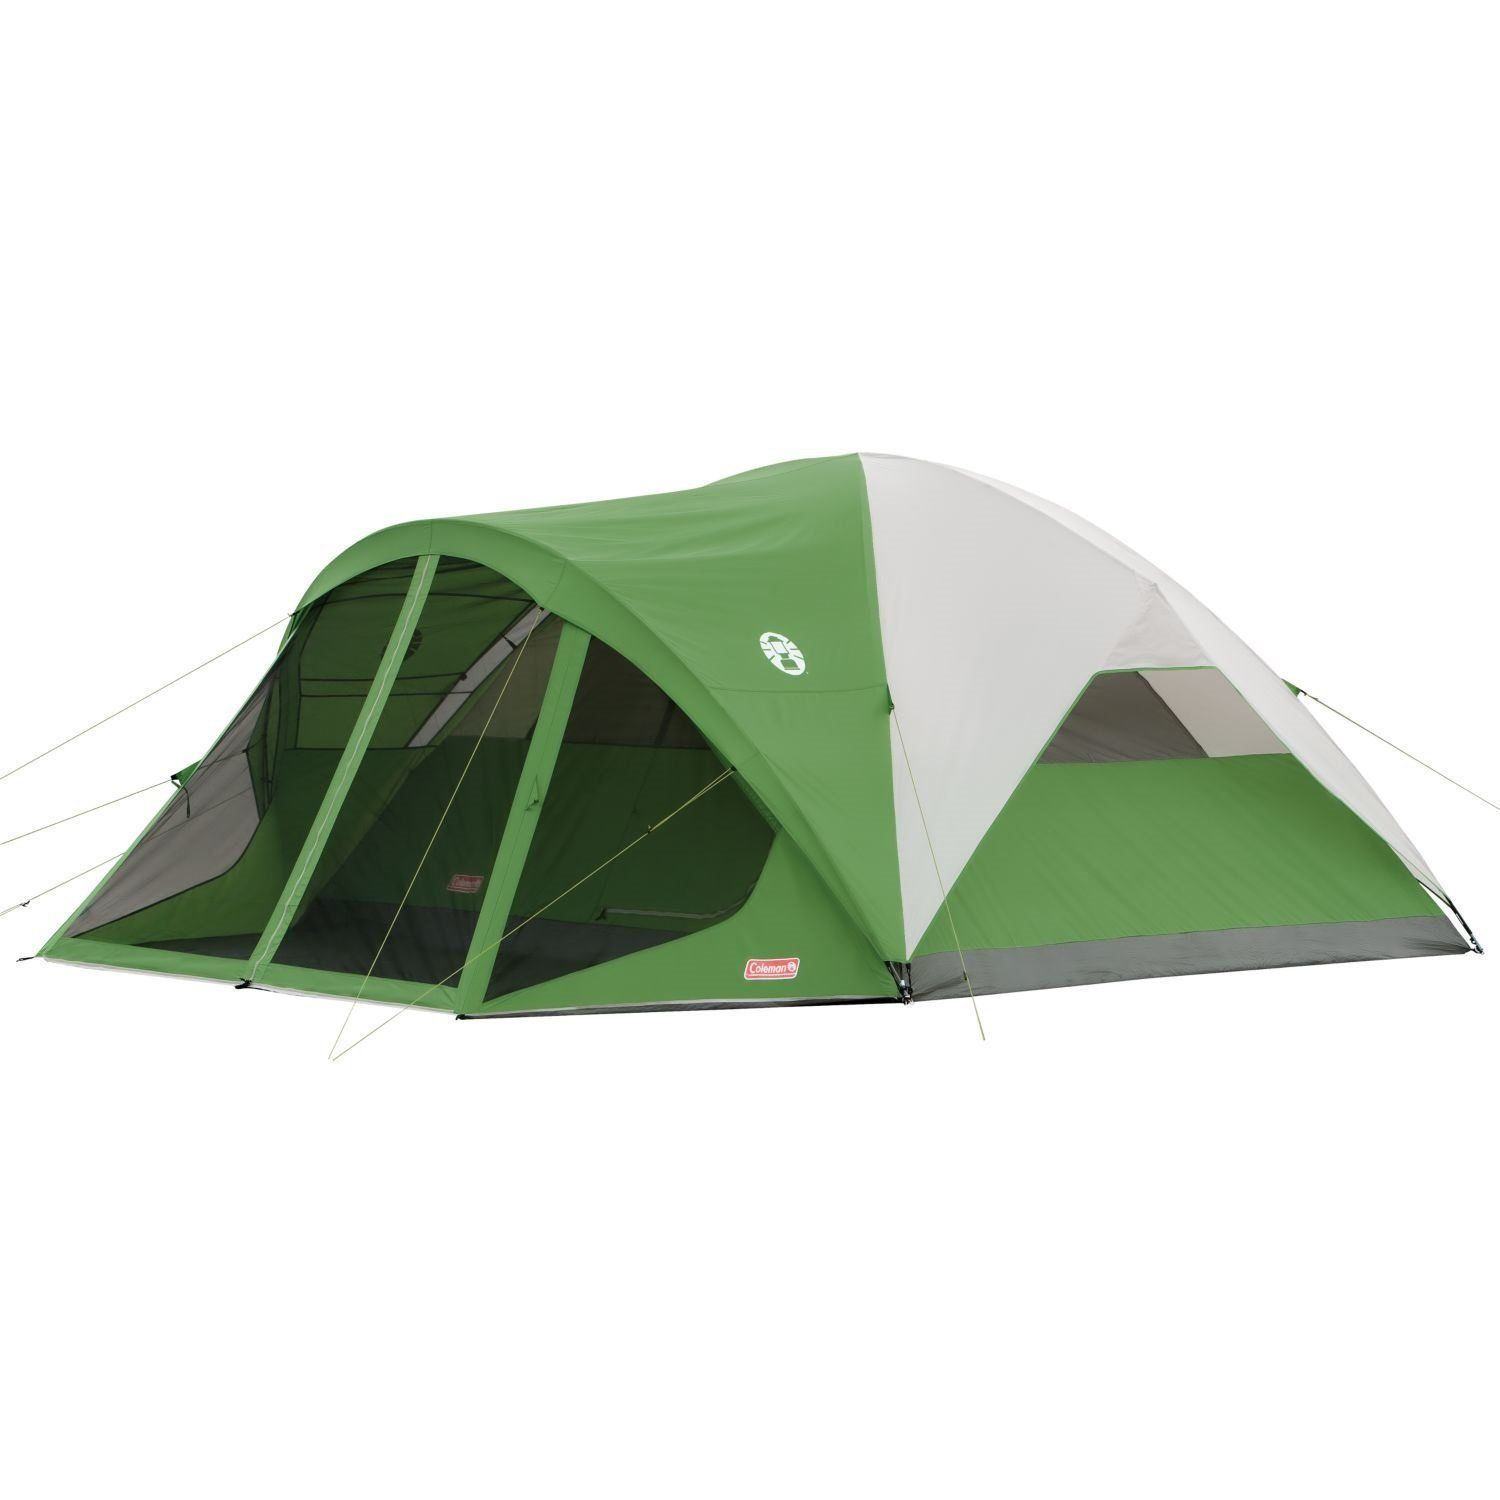 ... tents coleman tents c&ing gear c&ing equipment c&ing stove c&ing store canvas tents c&ing tent c&ing supplies 4 man tent family tents cheap ...  sc 1 st  Pinterest & tent pop up tent tents for sale camping tents coleman tents ...